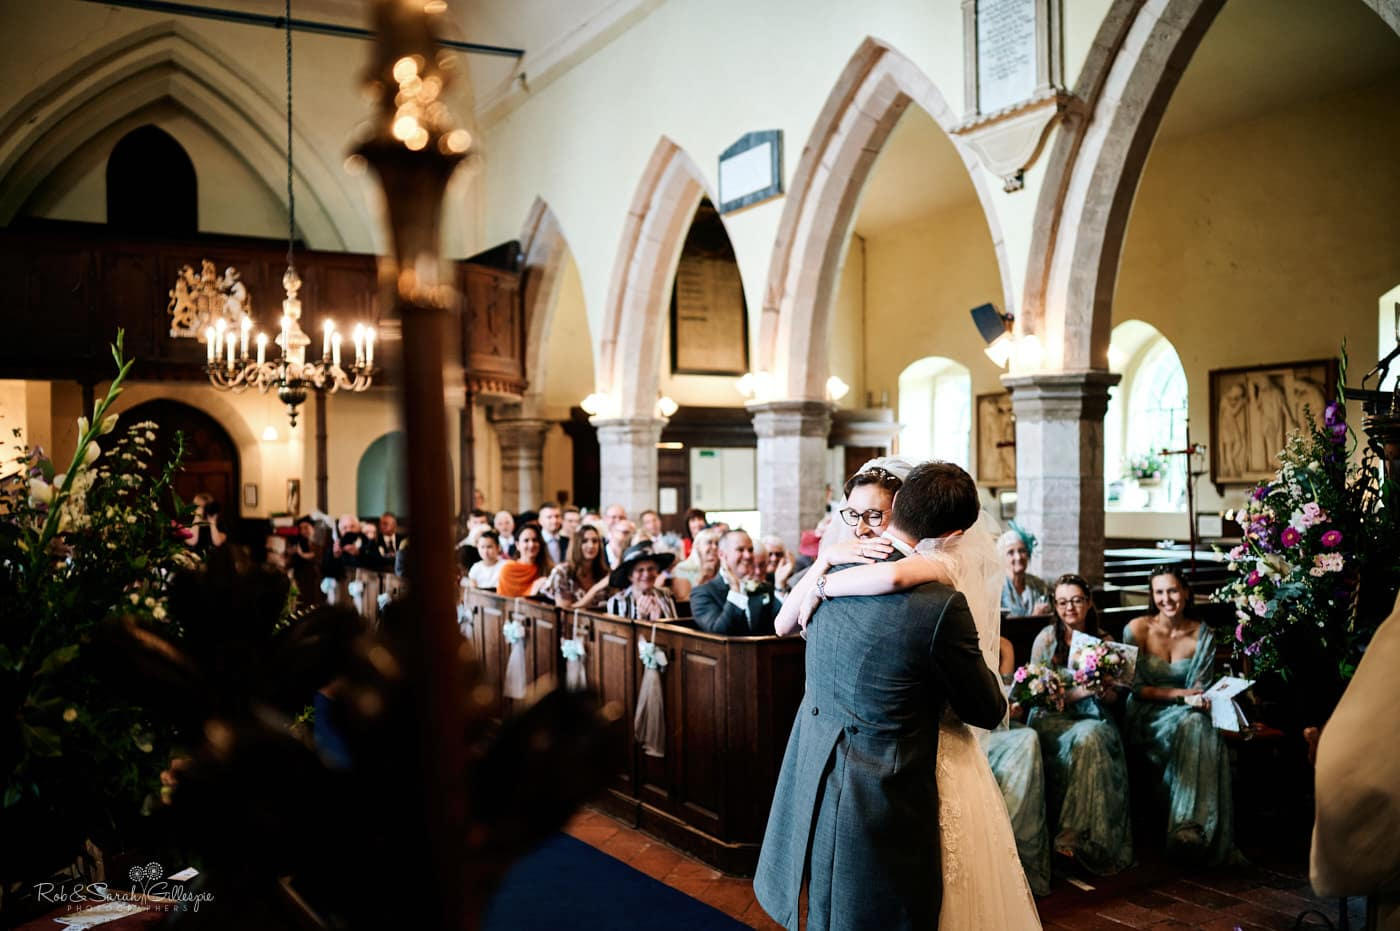 Bride and groom hug after getting married at Hanbury Church